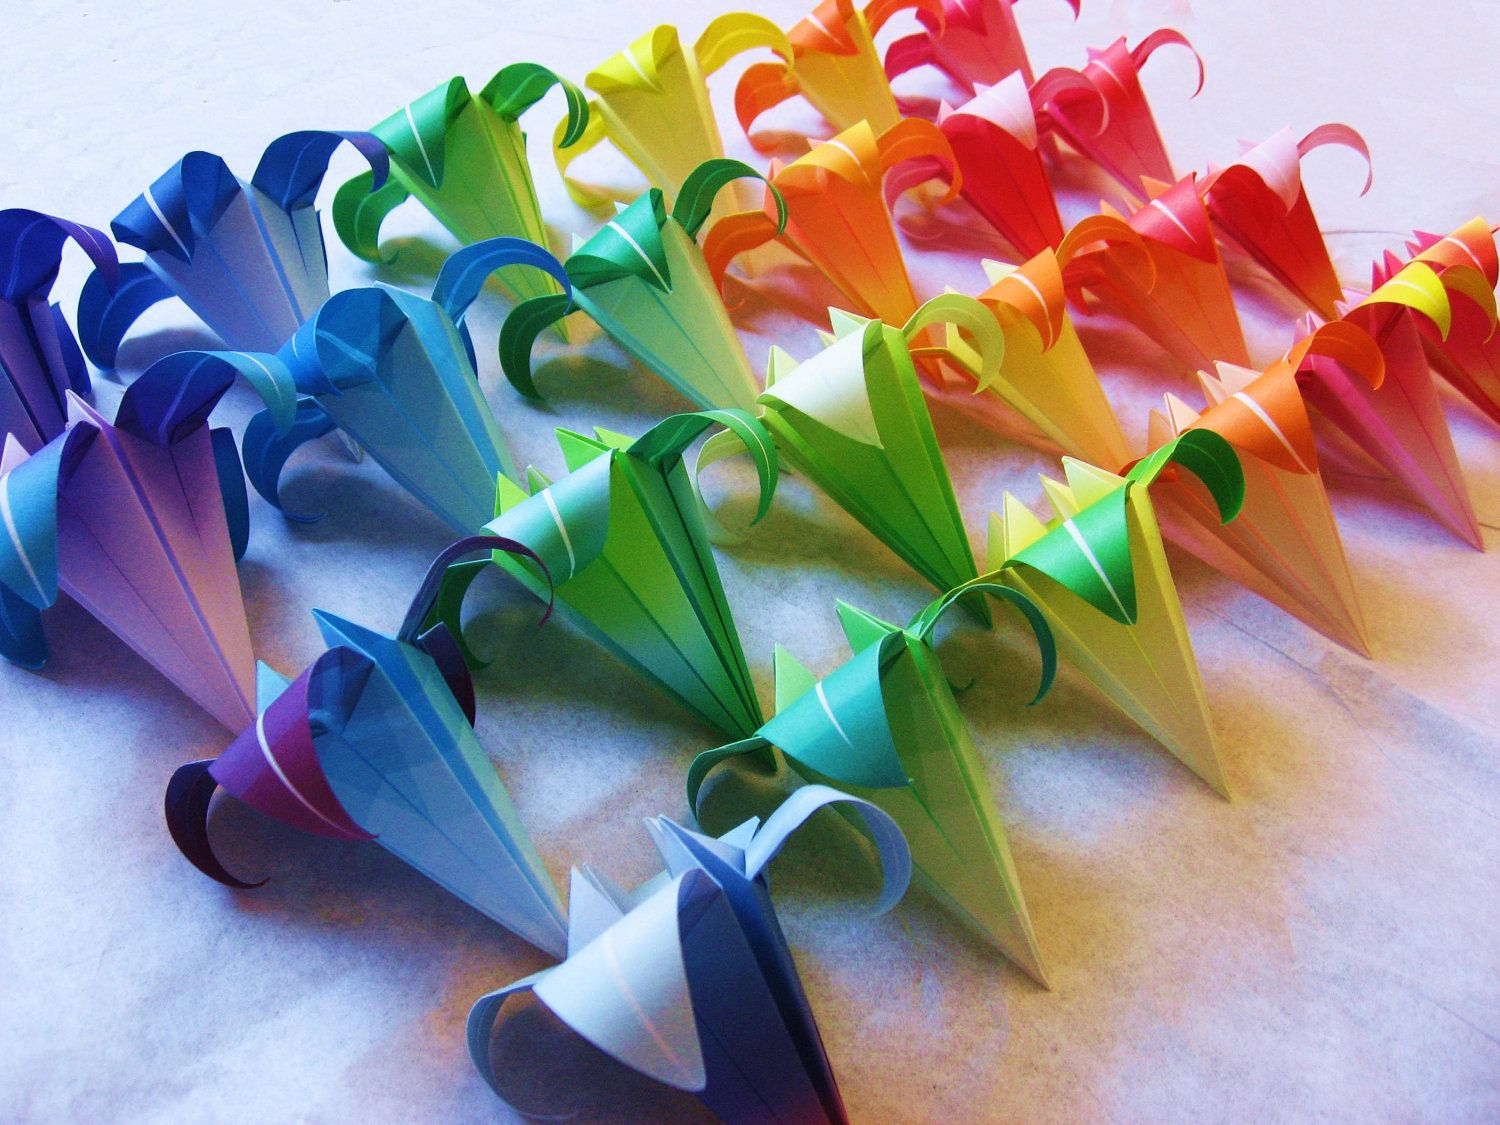 Best 25 rainbow origami ideas on pinterest origami mobile 25 large origami irises paper flowers made to order with rainbow paper great for gifts wedding or party favors and table decorations dhlflorist Image collections